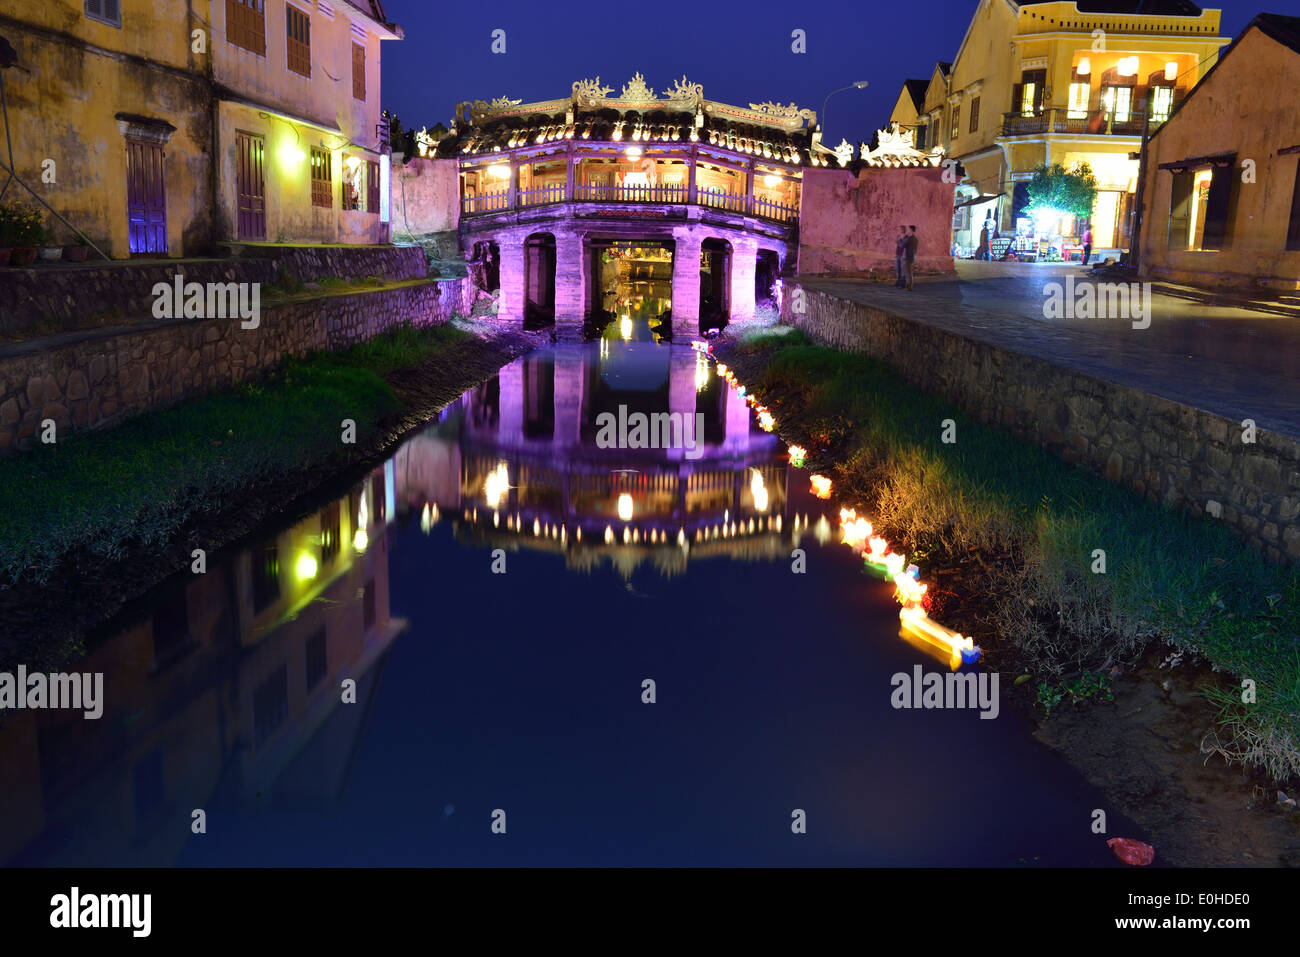 The famous Japanese Bridge at night in the old town of Hoi An, Vietnam - Stock Image